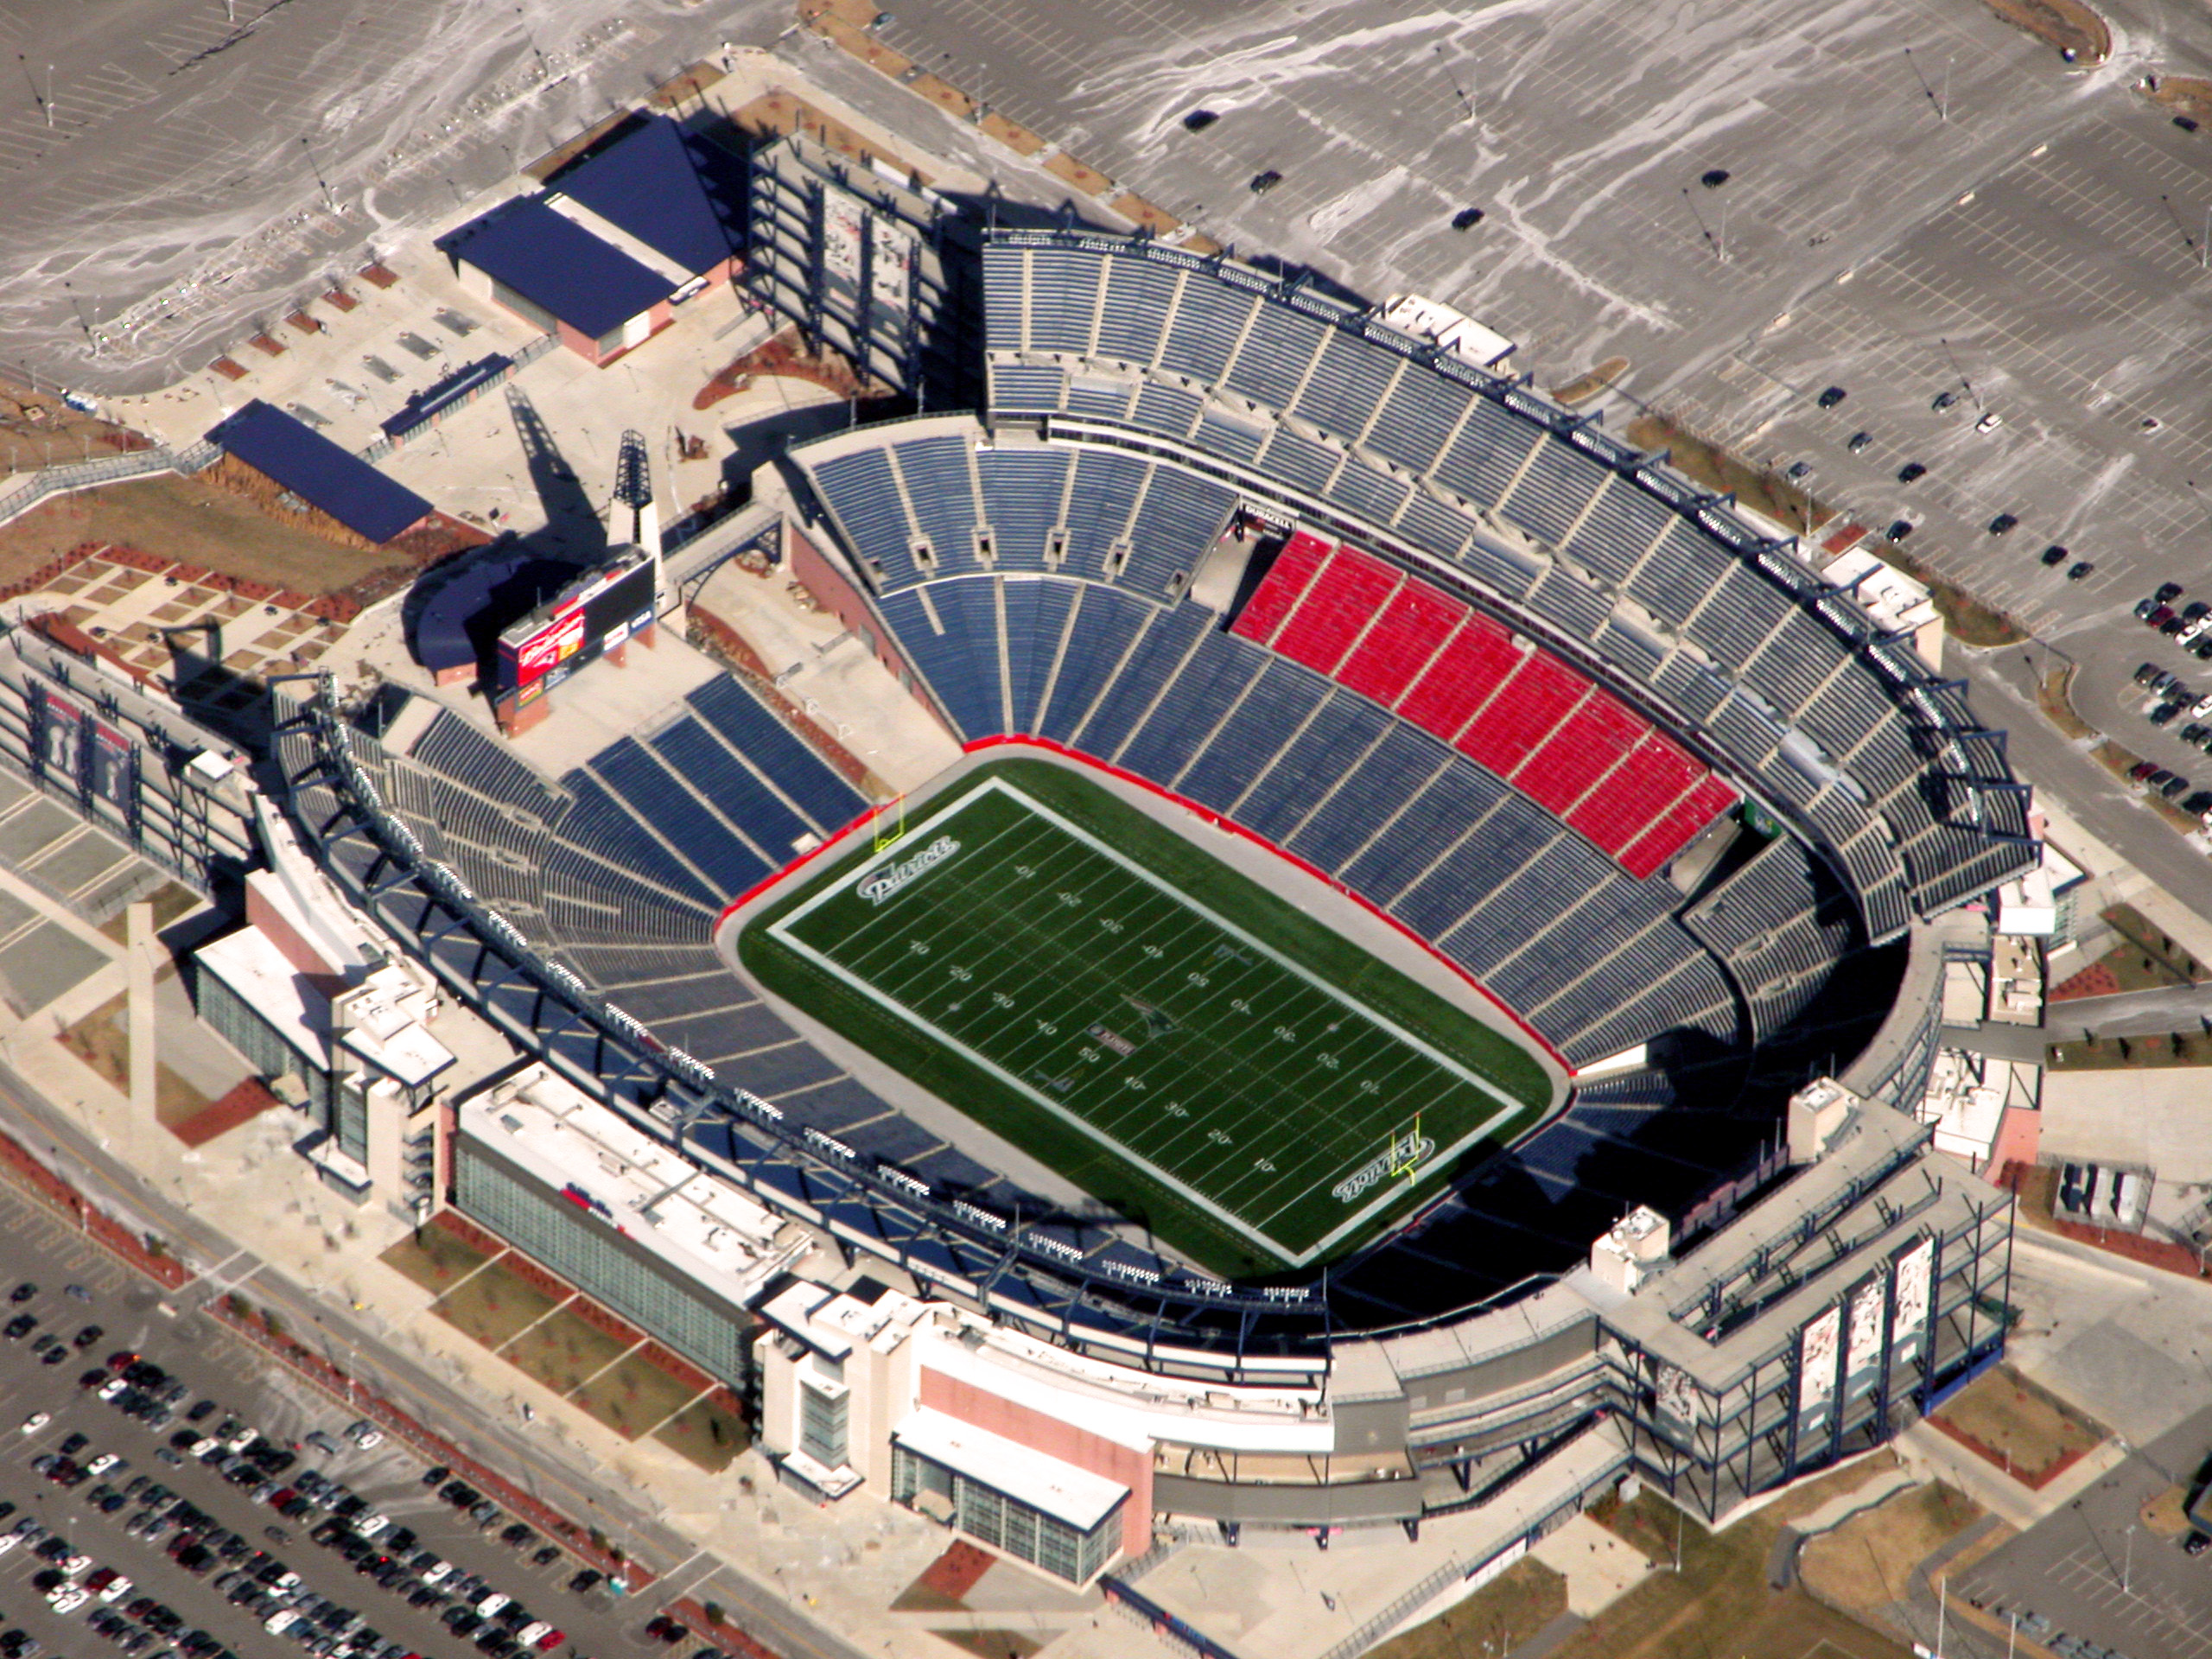 gillette stadium is oneof the most valuable pieces